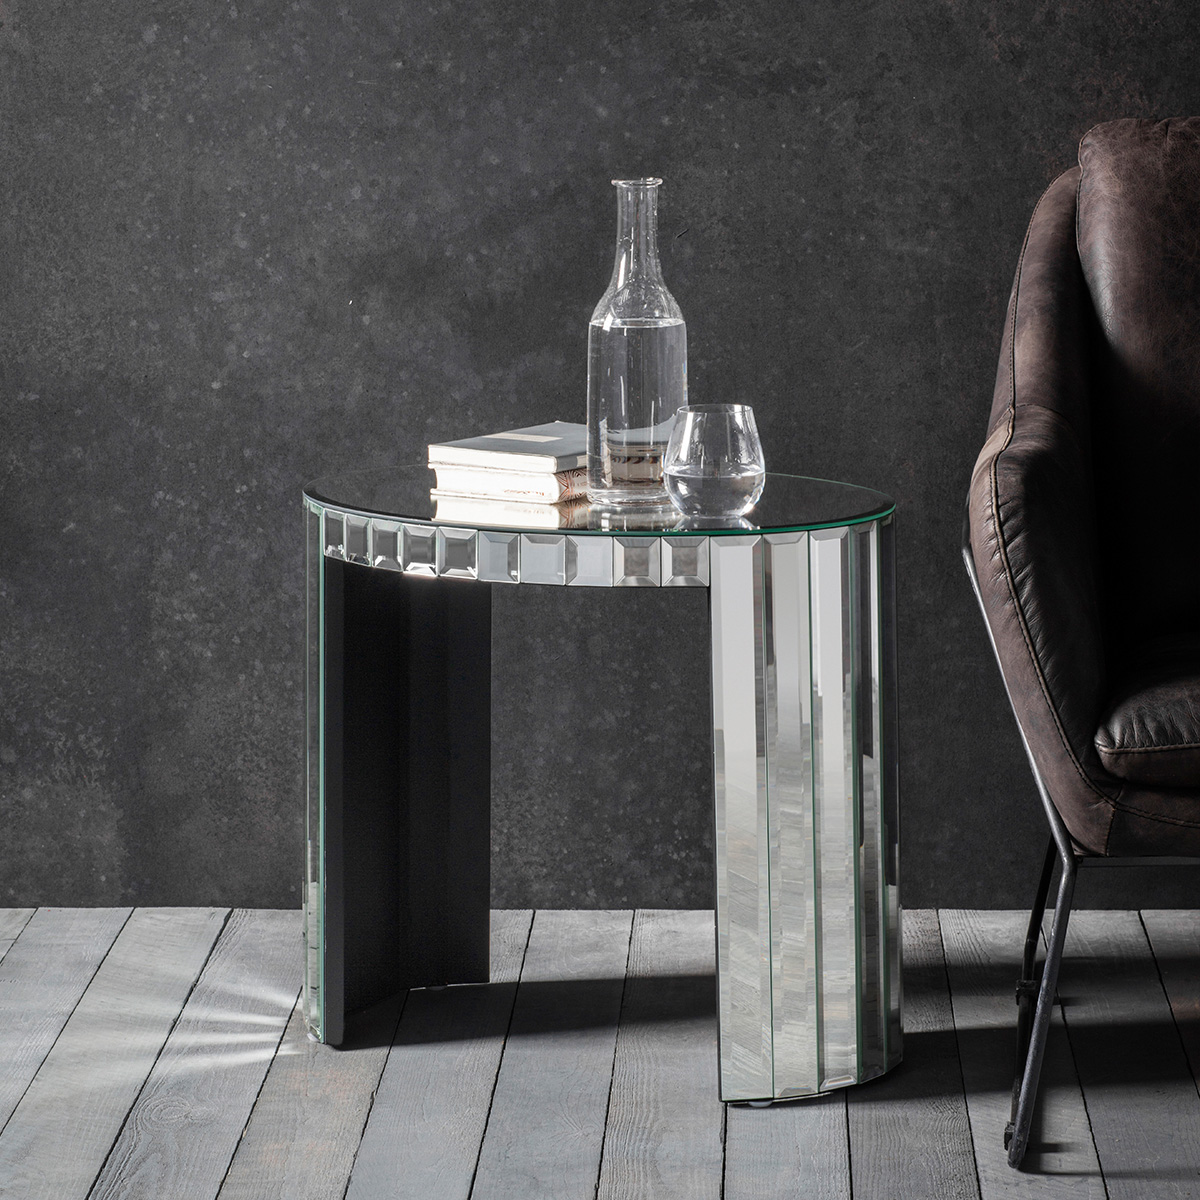 Odeon Mirrored Glass Side Table at FADS.co.uk